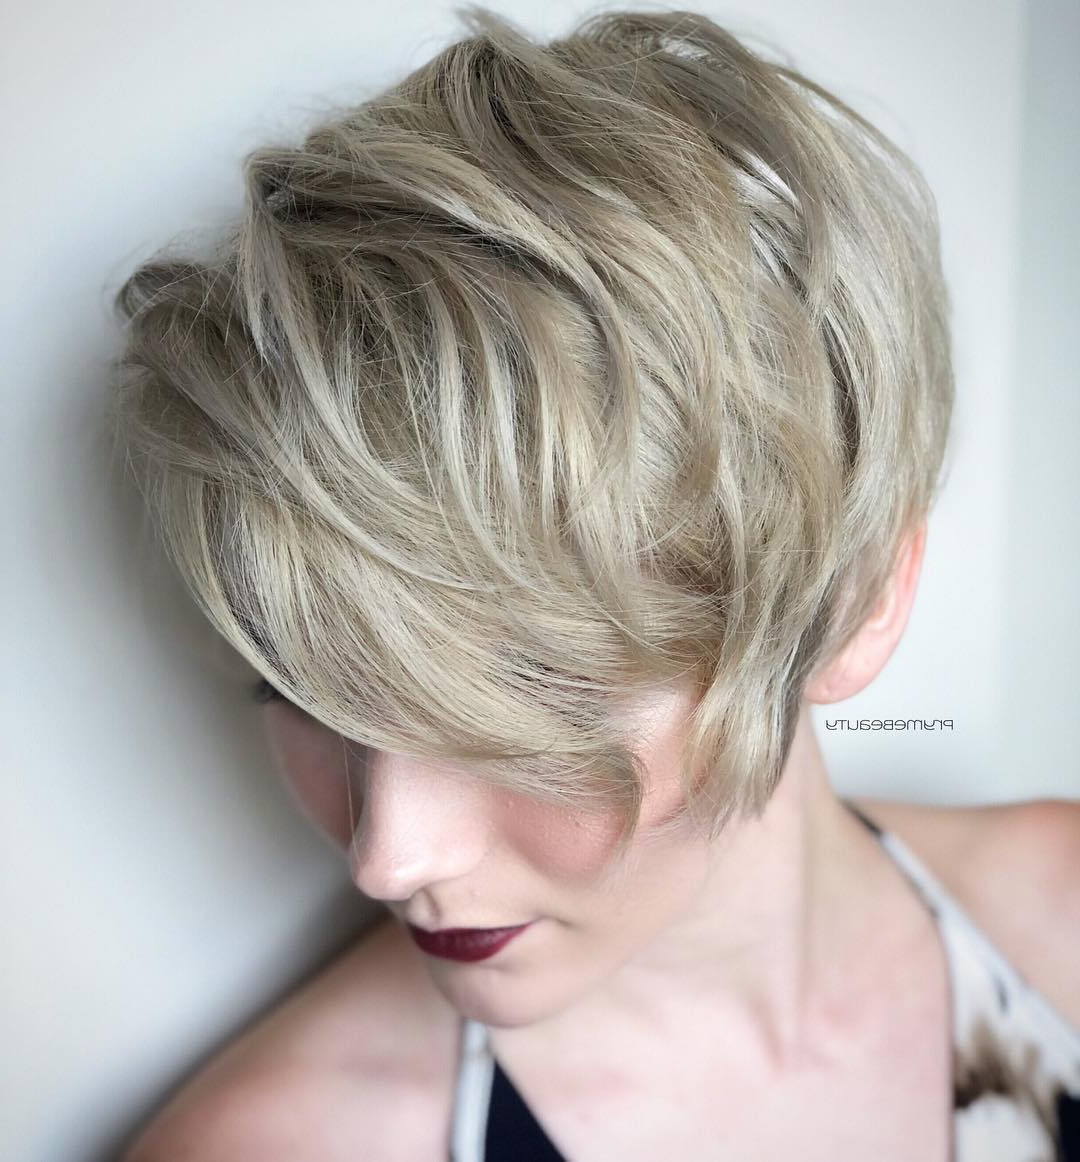 Top 10 Trendy, Low Maintenance Short Layered Hairstyles 2019 Inside Preferred No Maintenance Medium Haircuts (View 17 of 20)